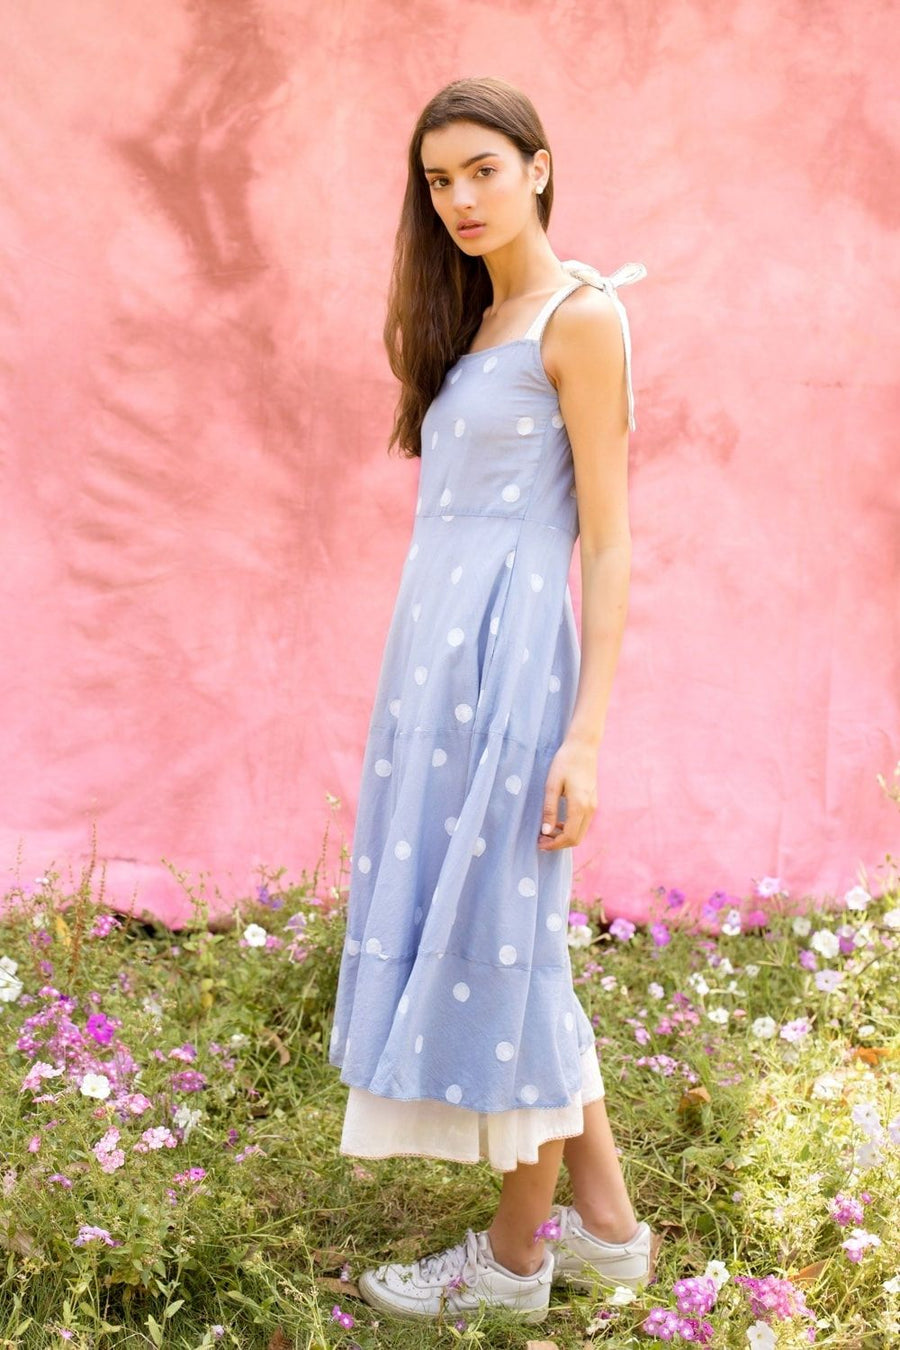 Sun Date Dress - Ethical made fashion - onlyethikal